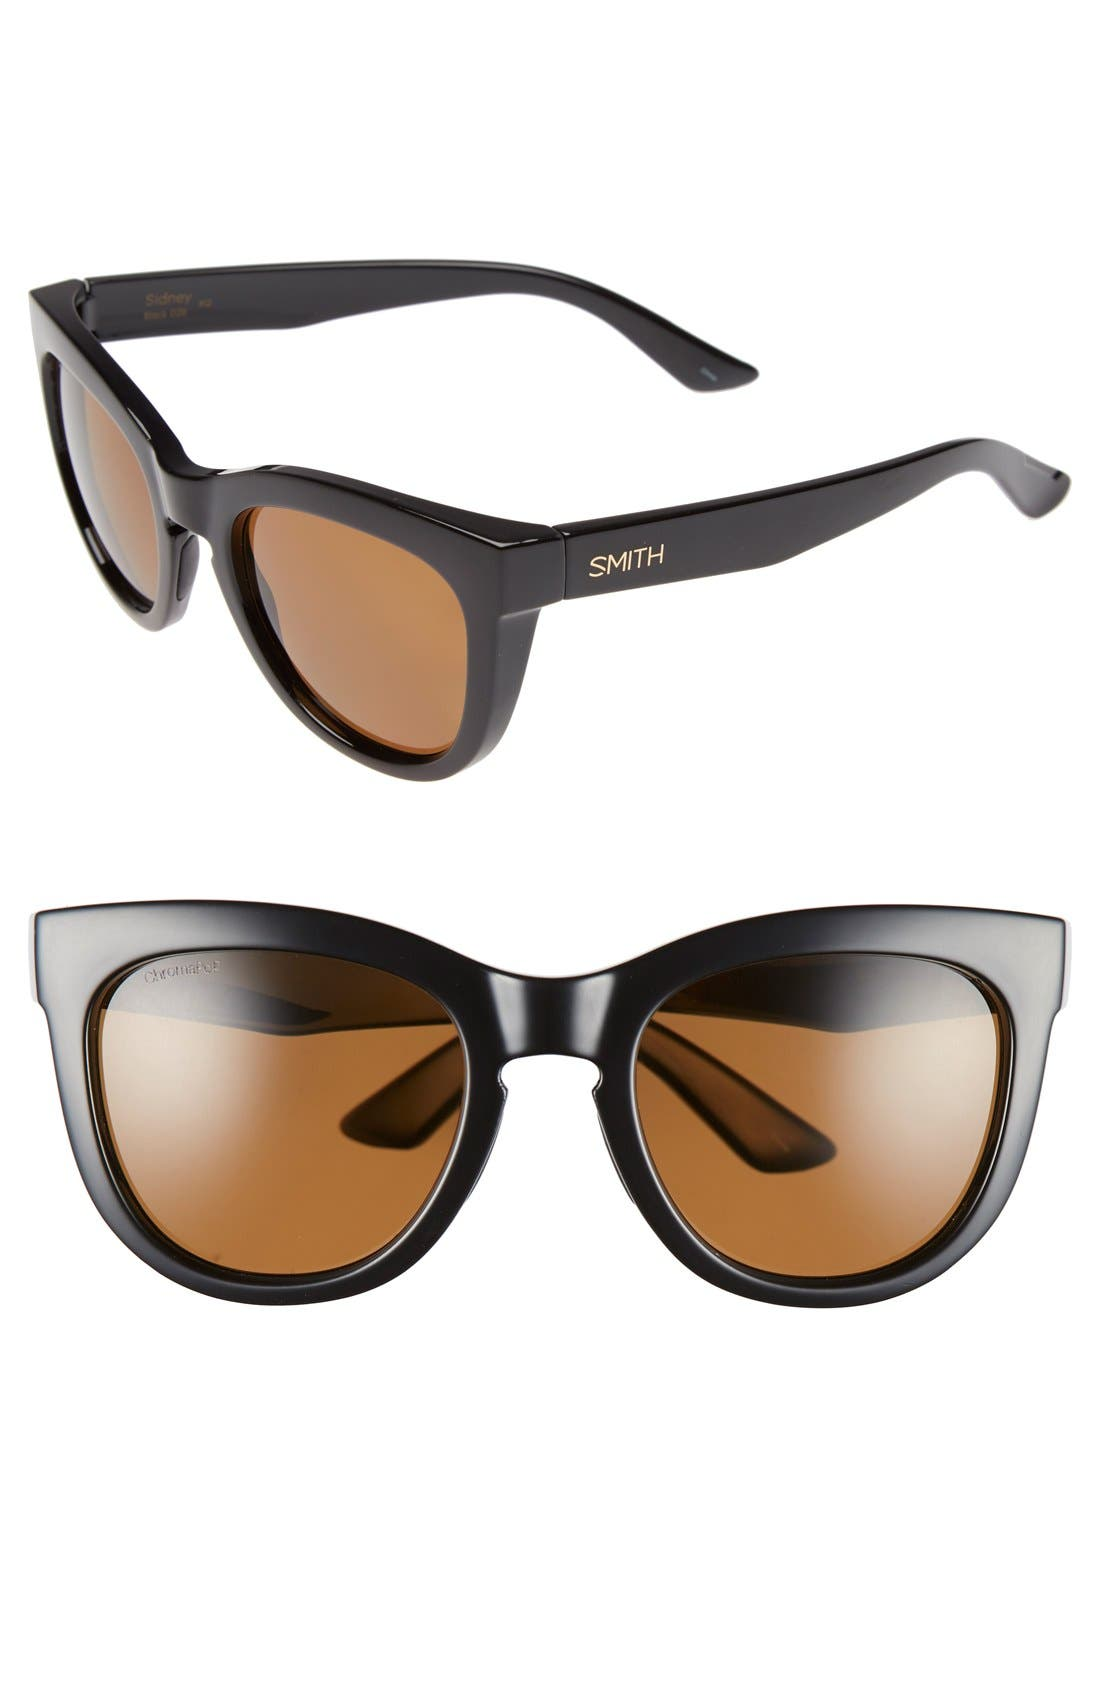 SMITH Sidney 55mm Polarized Sunglasses